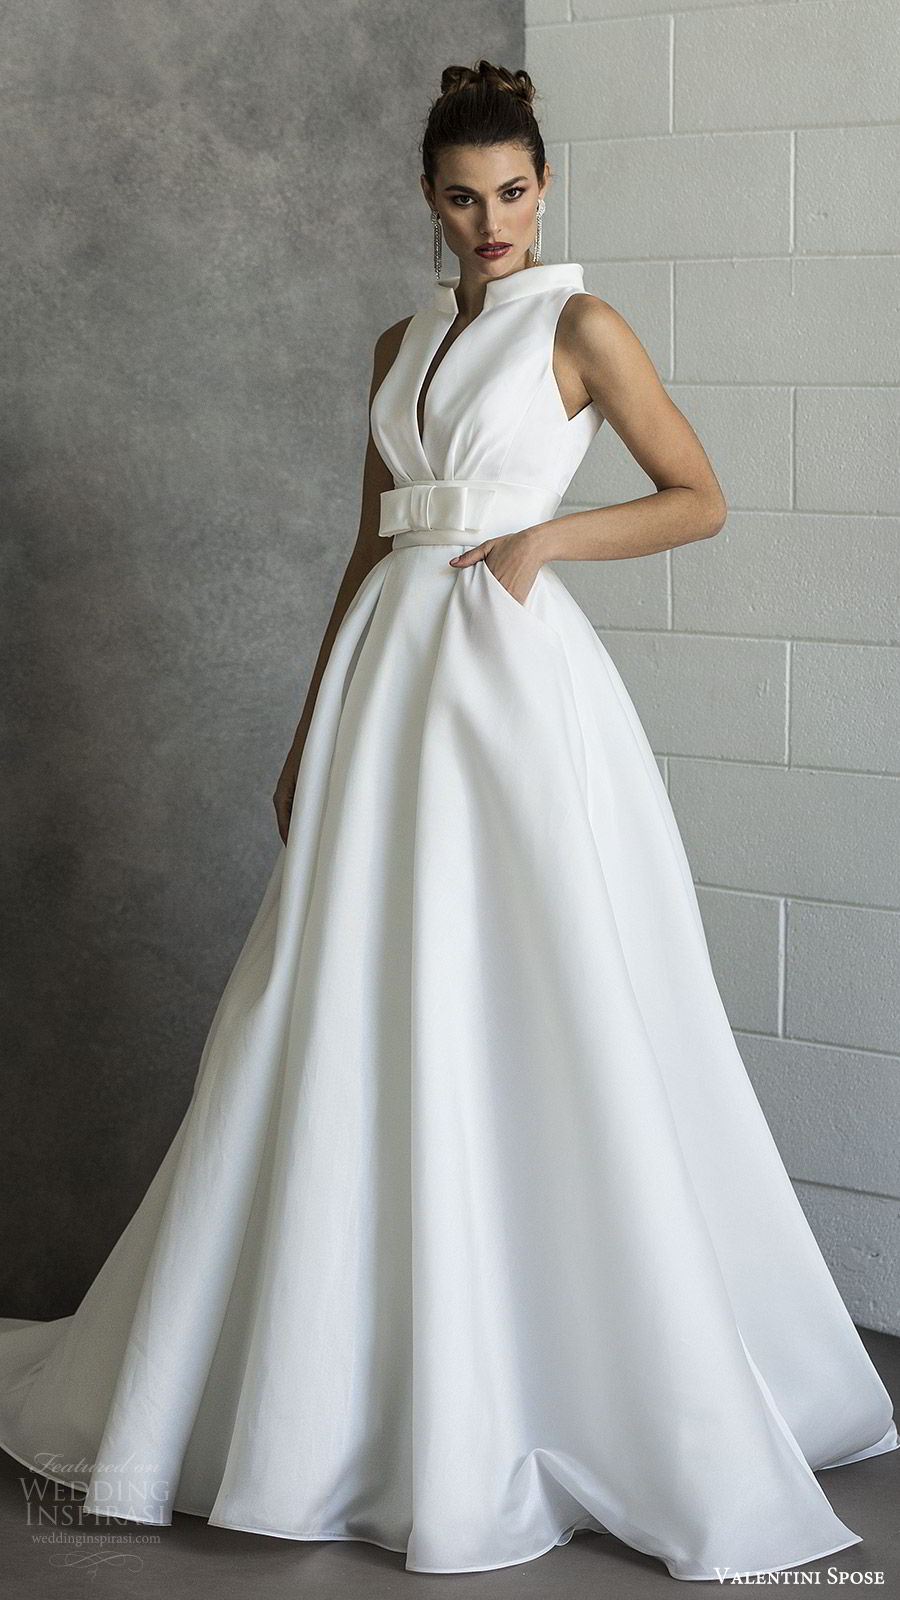 valentini spose spring 2020 bridal sleeveless split funnel neck a line ball gown wedding dress (16) pocket bow waist minimal modern chapel train mv